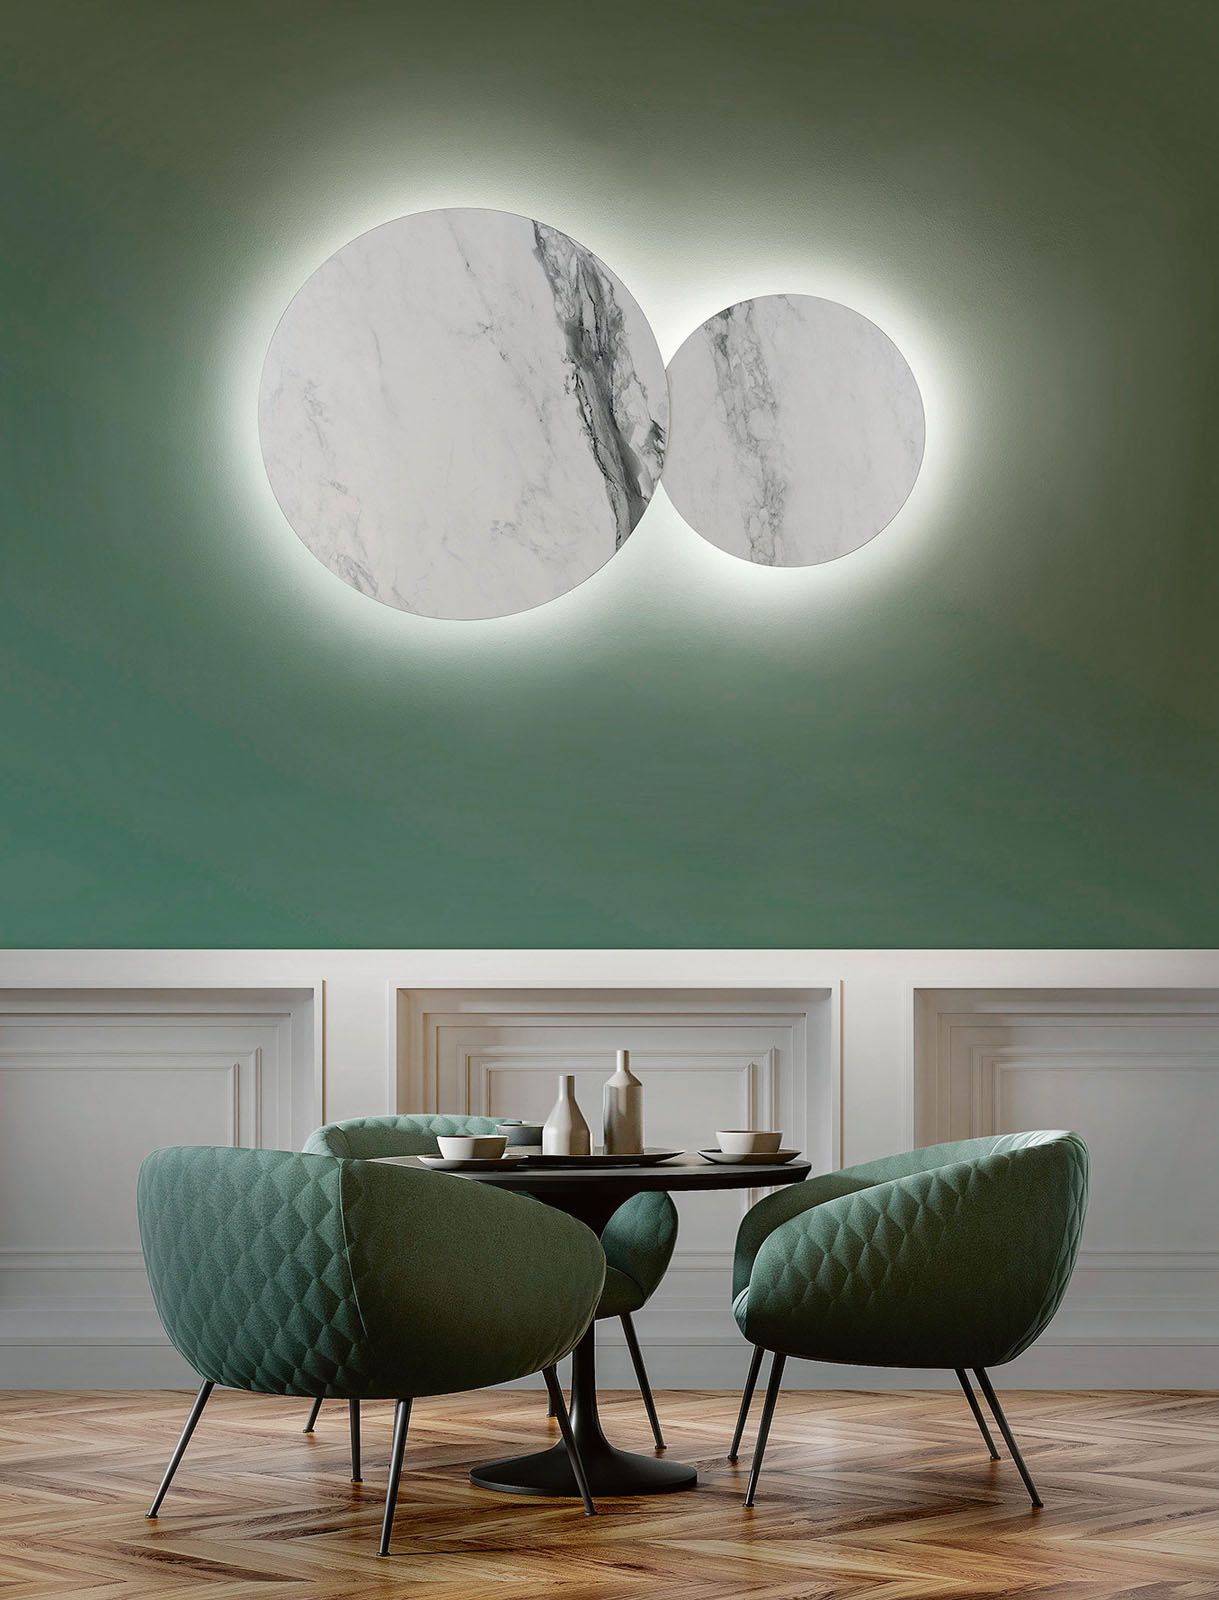 12 Minimalist Lighting Pieces That Make Beautiful Additions To Your Home